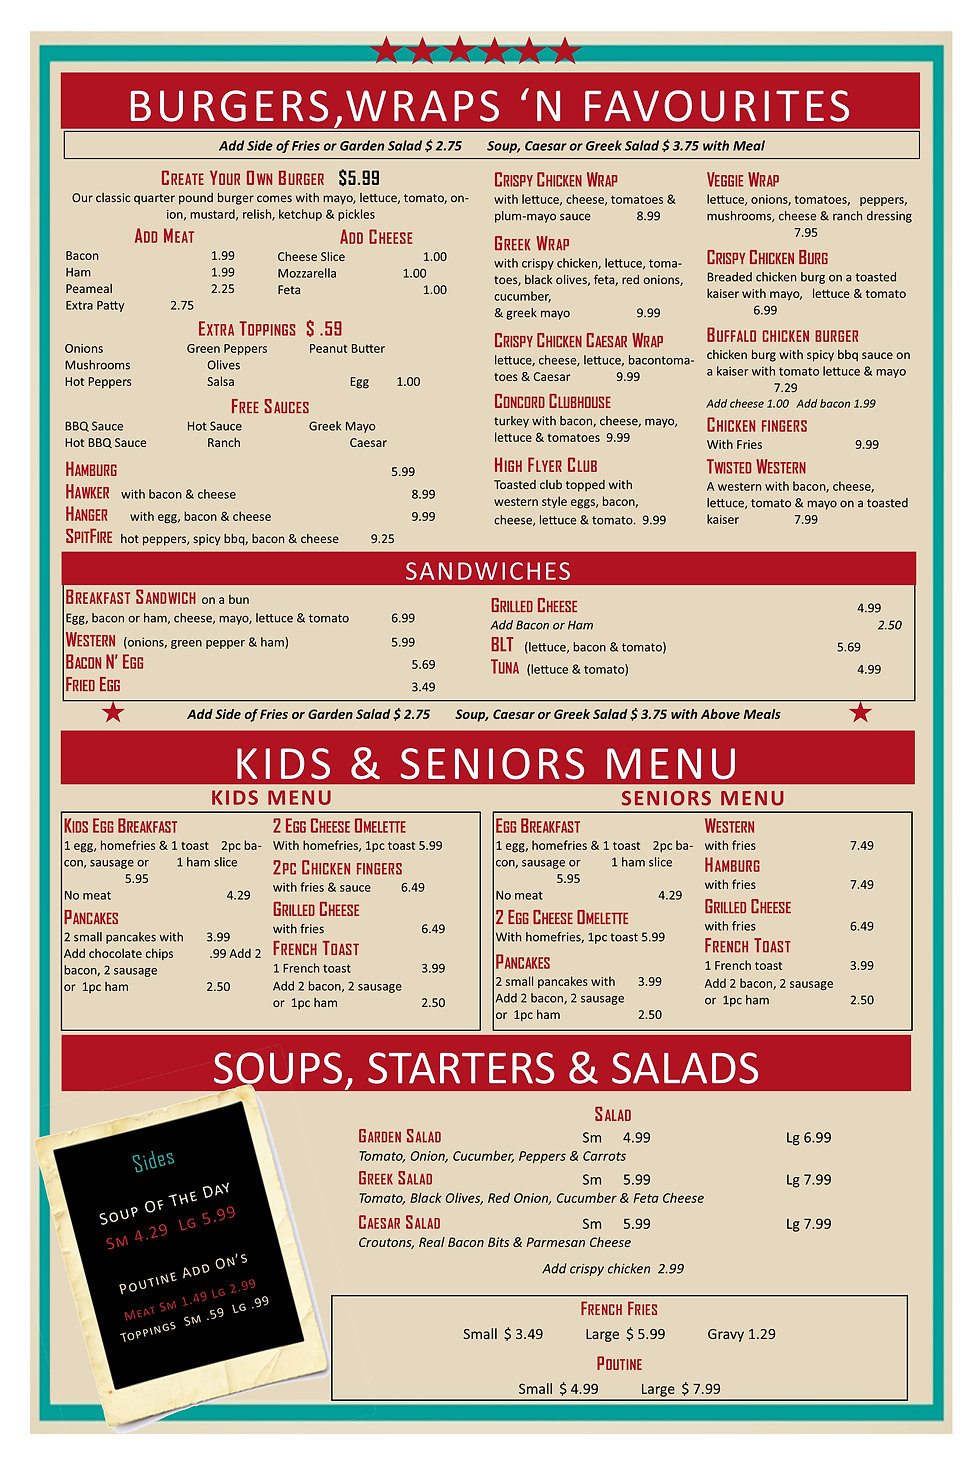 Brantford Lunch Menu1 2020.jpg